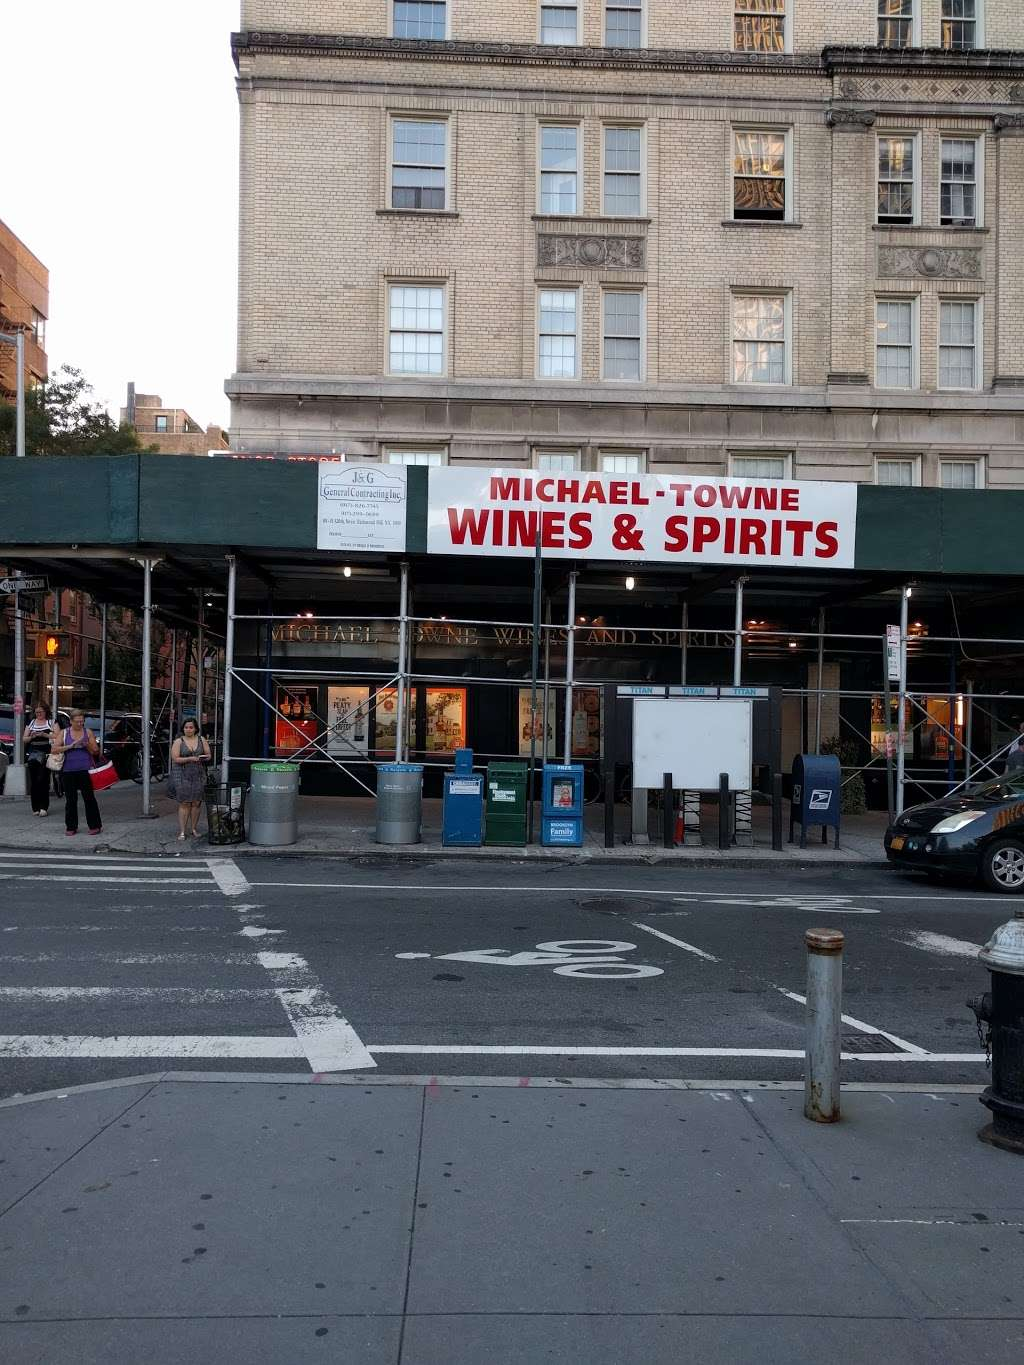 Michael Towne Wines and Spirits - store  | Photo 1 of 6 | Address: 73 Clark St, Brooklyn, NY 11201, USA | Phone: (718) 875-3667